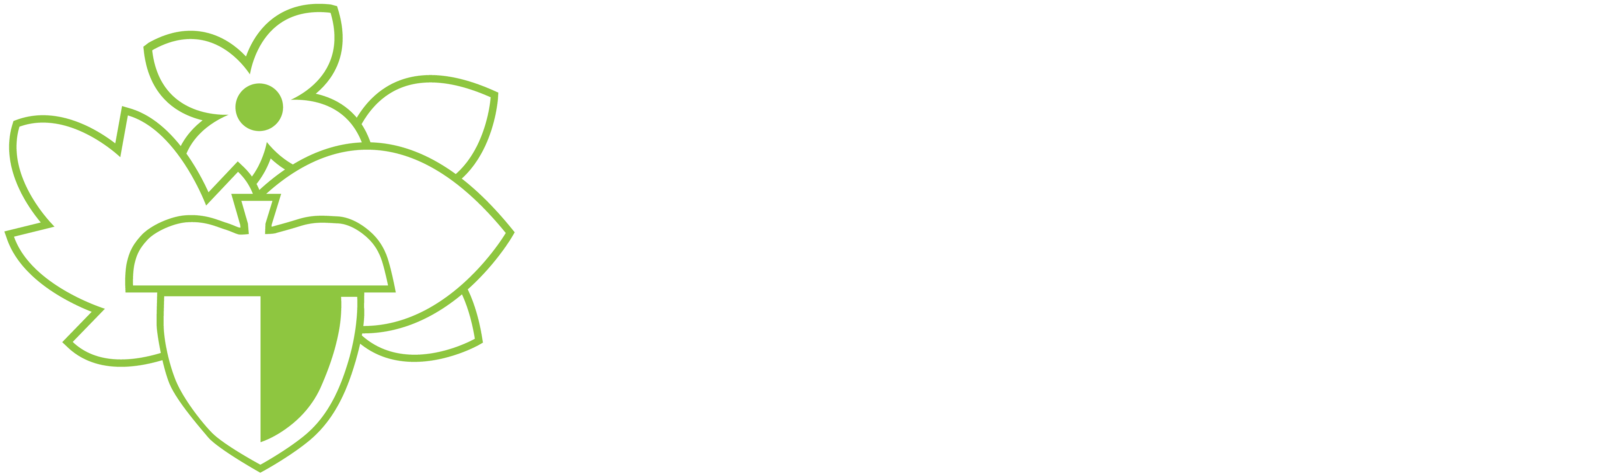 Cincinnati Parks Foundation Logo